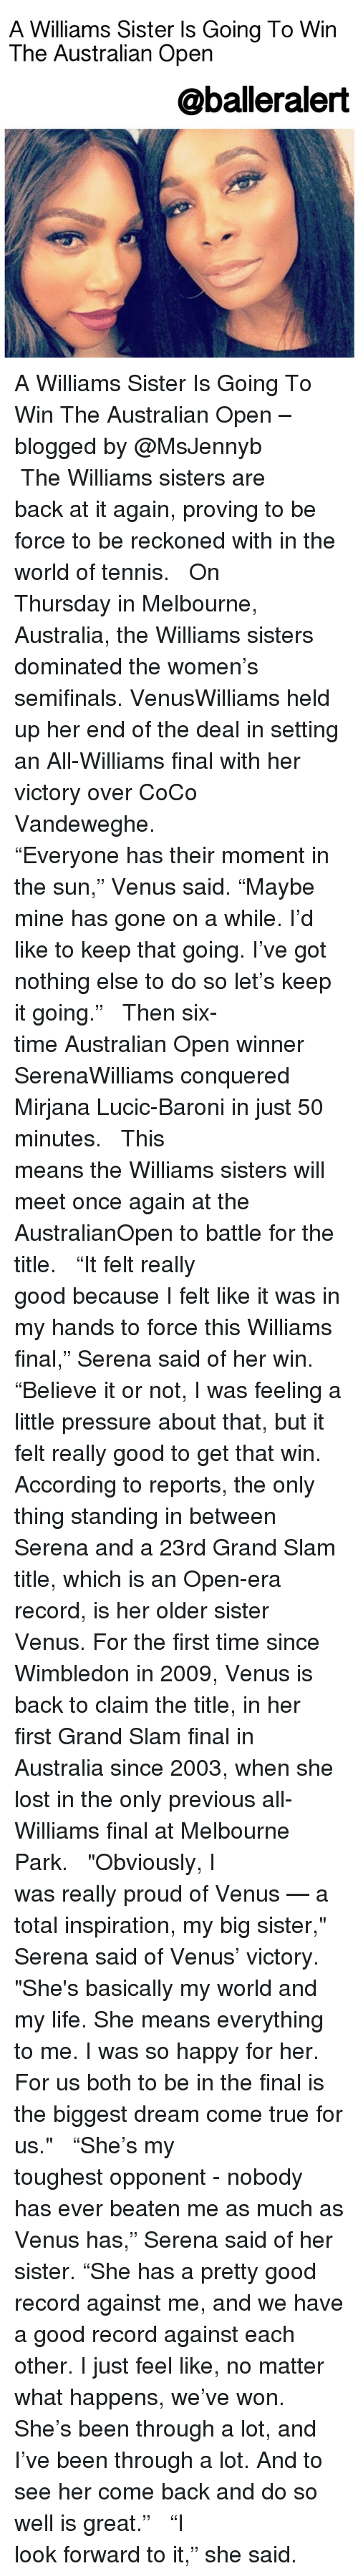 "Let Keep: A Williams Sister Is Going To Win  The Australian Open  @balleralert A Williams Sister Is Going To Win The Australian Open – blogged by @MsJennyb ⠀⠀⠀⠀⠀⠀⠀⠀⠀ ⠀⠀⠀⠀⠀⠀⠀⠀⠀ The Williams sisters are back at it again, proving to be force to be reckoned with in the world of tennis. ⠀⠀⠀⠀⠀⠀⠀⠀⠀ ⠀⠀⠀⠀⠀⠀⠀⠀⠀ On Thursday in Melbourne, Australia, the Williams sisters dominated the women's semifinals. VenusWilliams held up her end of the deal in setting an All-Williams final with her victory over CoCo Vandeweghe. ⠀⠀⠀⠀⠀⠀⠀⠀⠀ ⠀⠀⠀⠀⠀⠀⠀⠀⠀ ""Everyone has their moment in the sun,"" Venus said. ""Maybe mine has gone on a while. I'd like to keep that going. I've got nothing else to do so let's keep it going."" ⠀⠀⠀⠀⠀⠀⠀⠀⠀ ⠀⠀⠀⠀⠀⠀⠀⠀⠀ Then six-time Australian Open winner SerenaWilliams conquered Mirjana Lucic-Baroni in just 50 minutes. ⠀⠀⠀⠀⠀⠀⠀⠀⠀ ⠀⠀⠀⠀⠀⠀⠀⠀⠀ This means the Williams sisters will meet once again at the AustralianOpen to battle for the title. ⠀⠀⠀⠀⠀⠀⠀⠀⠀ ⠀⠀⠀⠀⠀⠀⠀⠀⠀ ""It felt really good because I felt like it was in my hands to force this Williams final,"" Serena said of her win. ""Believe it or not, I was feeling a little pressure about that, but it felt really good to get that win. According to reports, the only thing standing in between Serena and a 23rd Grand Slam title, which is an Open-era record, is her older sister Venus. For the first time since Wimbledon in 2009, Venus is back to claim the title, in her first Grand Slam final in Australia since 2003, when she lost in the only previous all-Williams final at Melbourne Park. ⠀⠀⠀⠀⠀⠀⠀⠀⠀ ⠀⠀⠀⠀⠀⠀⠀⠀⠀ ""Obviously, I was really proud of Venus — a total inspiration, my big sister,"" Serena said of Venus' victory. ""She's basically my world and my life. She means everything to me. I was so happy for her. For us both to be in the final is the biggest dream come true for us."" ⠀⠀⠀⠀⠀⠀⠀⠀⠀ ⠀⠀⠀⠀⠀⠀⠀⠀⠀ ""She's my toughest opponent - nobody has ever beaten me as much as Venus has,"" Serena said of her sister. ""She has a pretty good record against me, and we have a good record against each other. I just feel like, no matter what happens, we've won. She's been through a lot, and I've been through a lot. And to see her come back and do so well is great."" ⠀⠀⠀⠀⠀⠀⠀⠀⠀ ⠀⠀⠀⠀⠀⠀⠀⠀⠀ ""I look forward to it,"" she said."